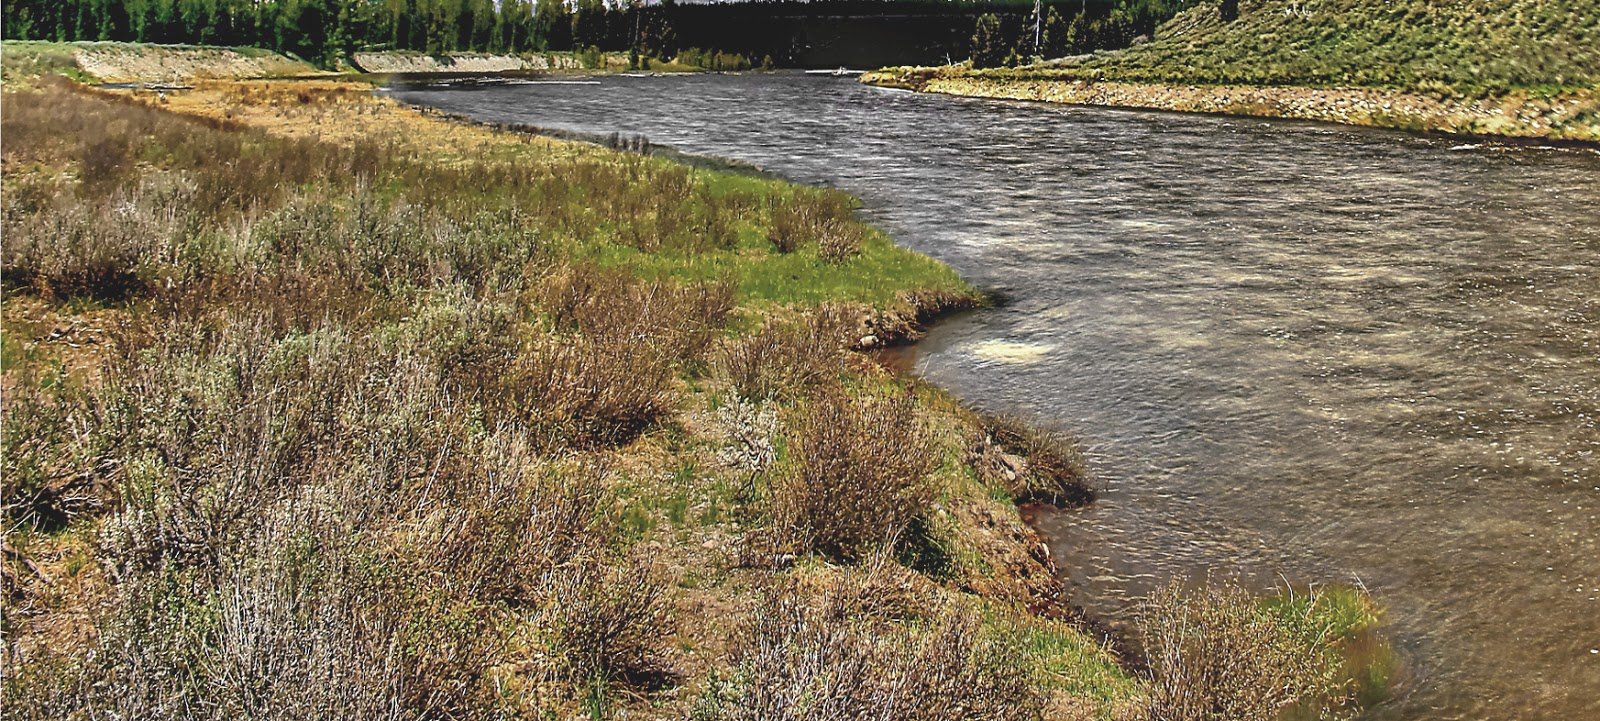 Fly fishing in yellowstone national park for Yellowstone fly fishing